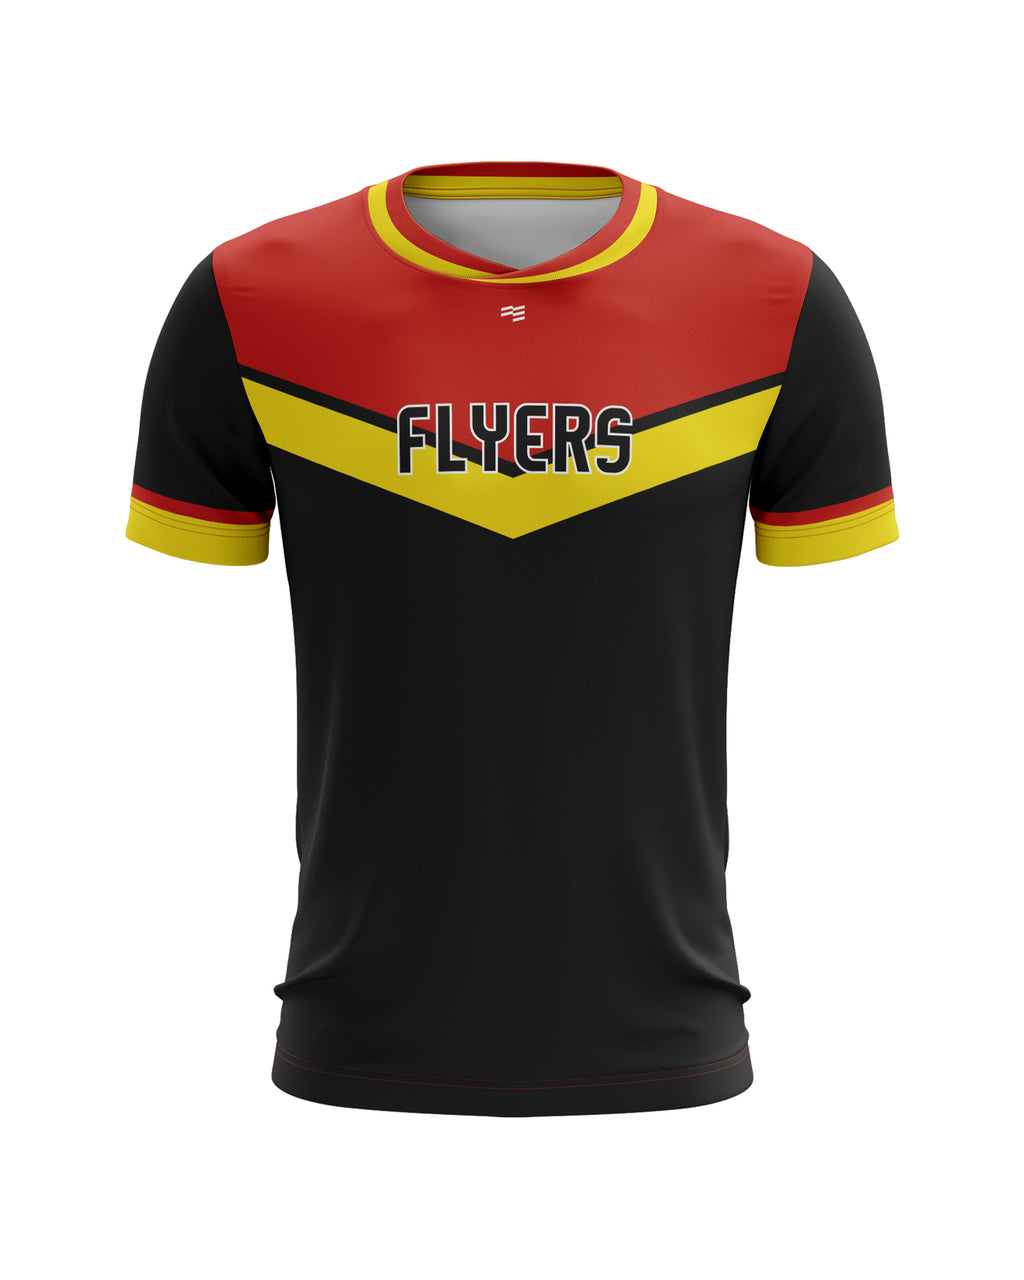 Flyers Rugby Jersey - Mens